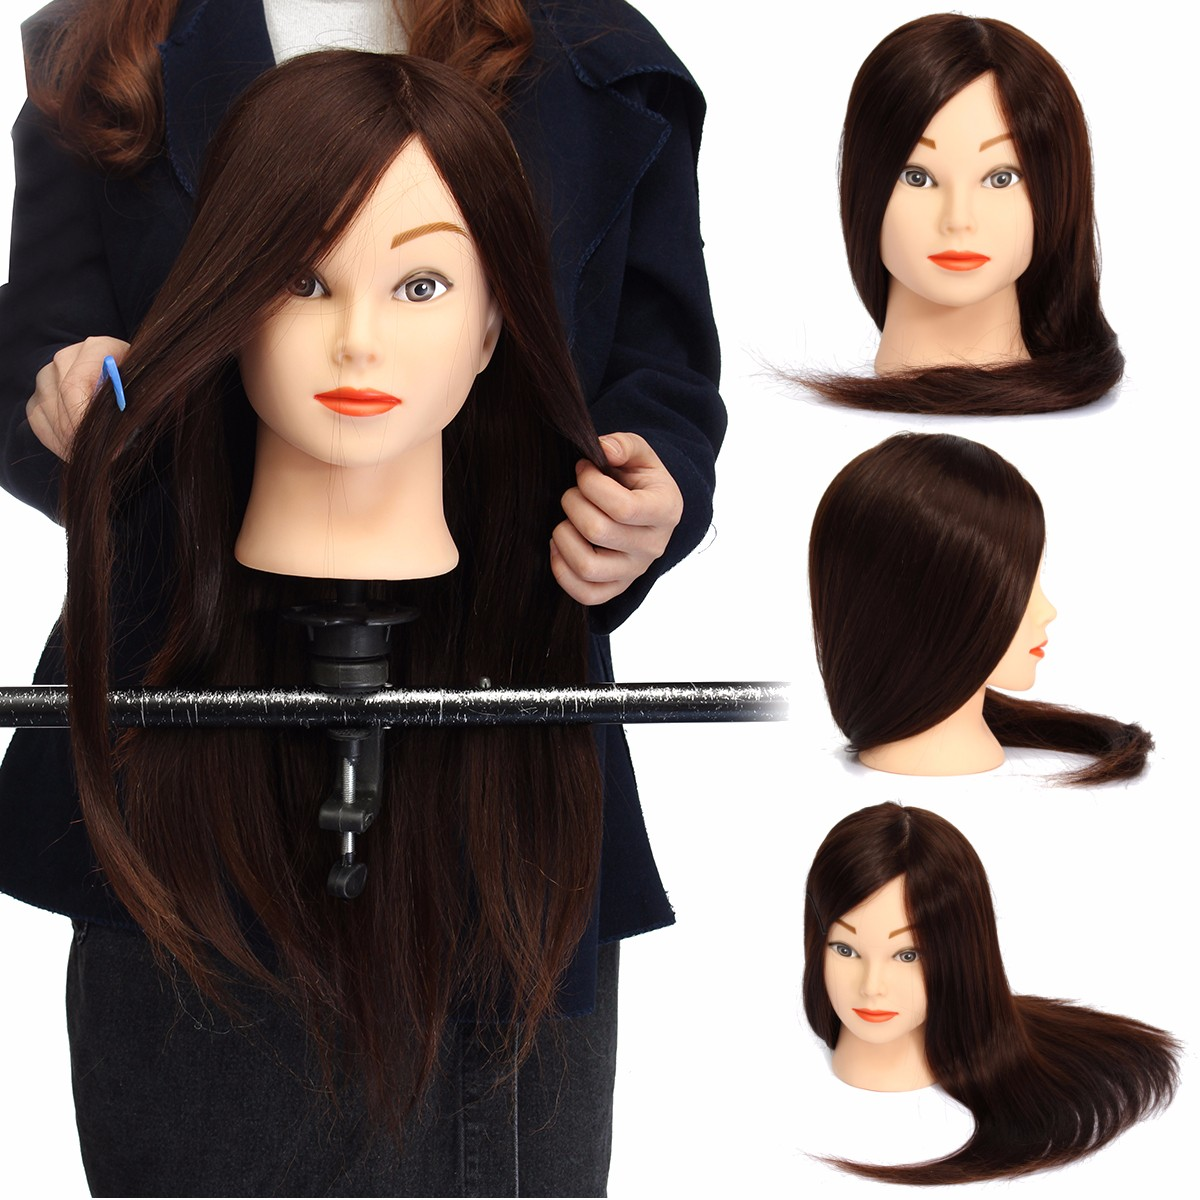 18'' Hairdressing Mannequin Hair Practice Training 90% Human Head Salon + Clamp